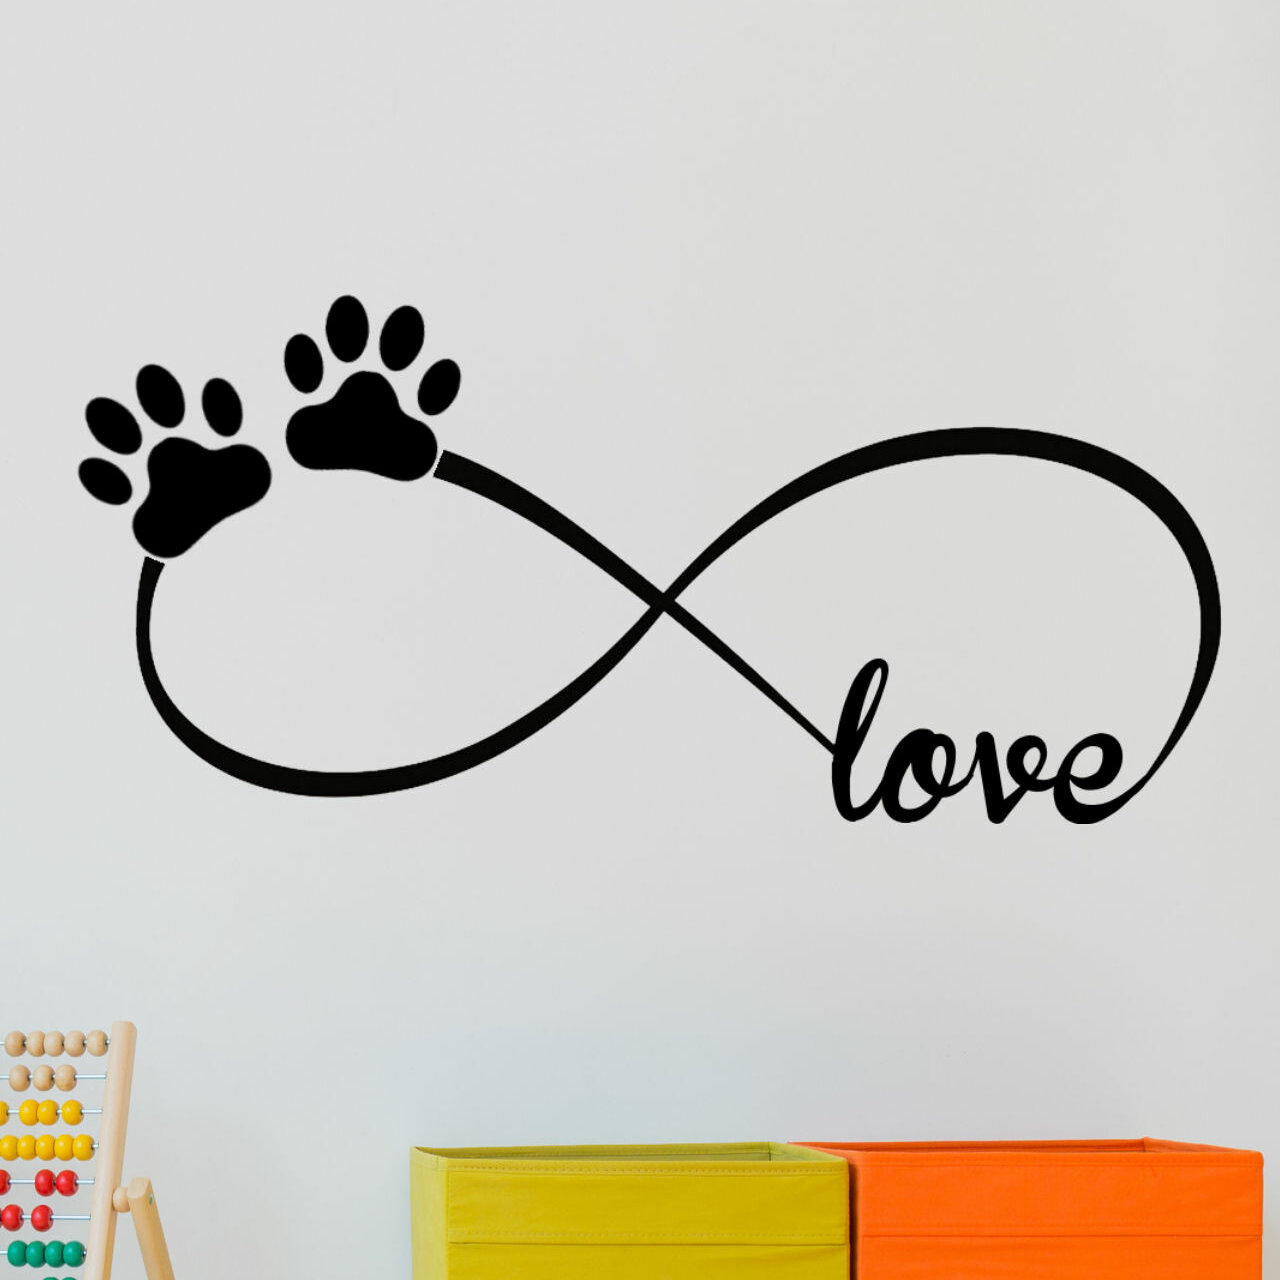 Decalthewalls infinity love symbol with pet paws vinyl wall decal decalthewalls infinity love symbol with pet paws vinyl wall decal reviews wayfair biocorpaavc